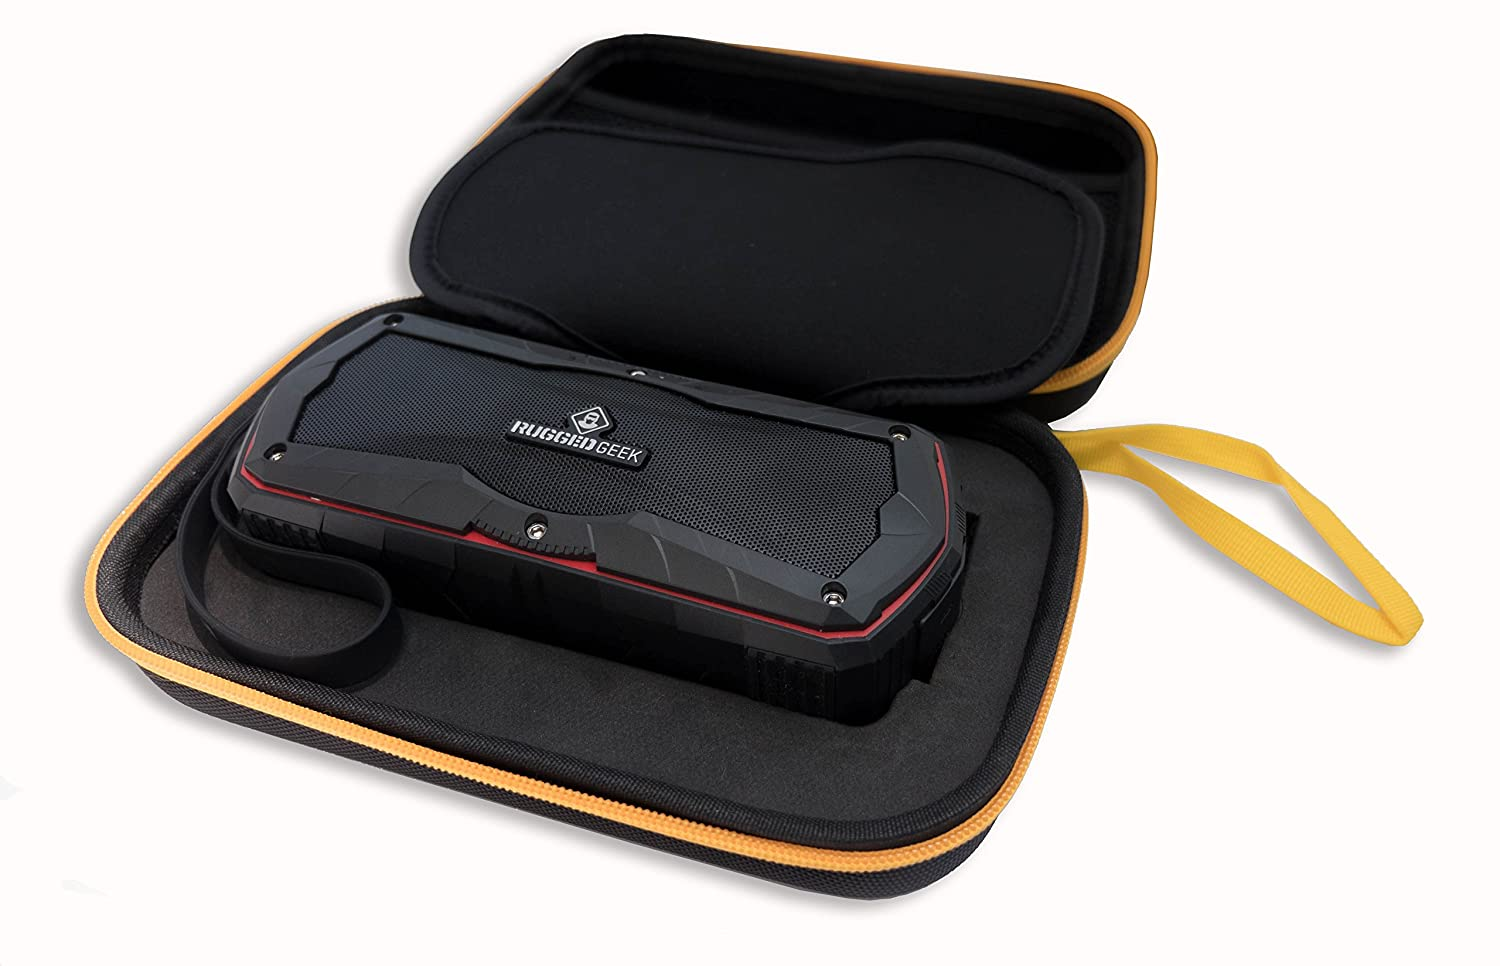 Rugged Geek Multi Purpose Hard Shell EVA Carrying Case for Portable Jump Starters and other Tools including the RG1000 4350279289